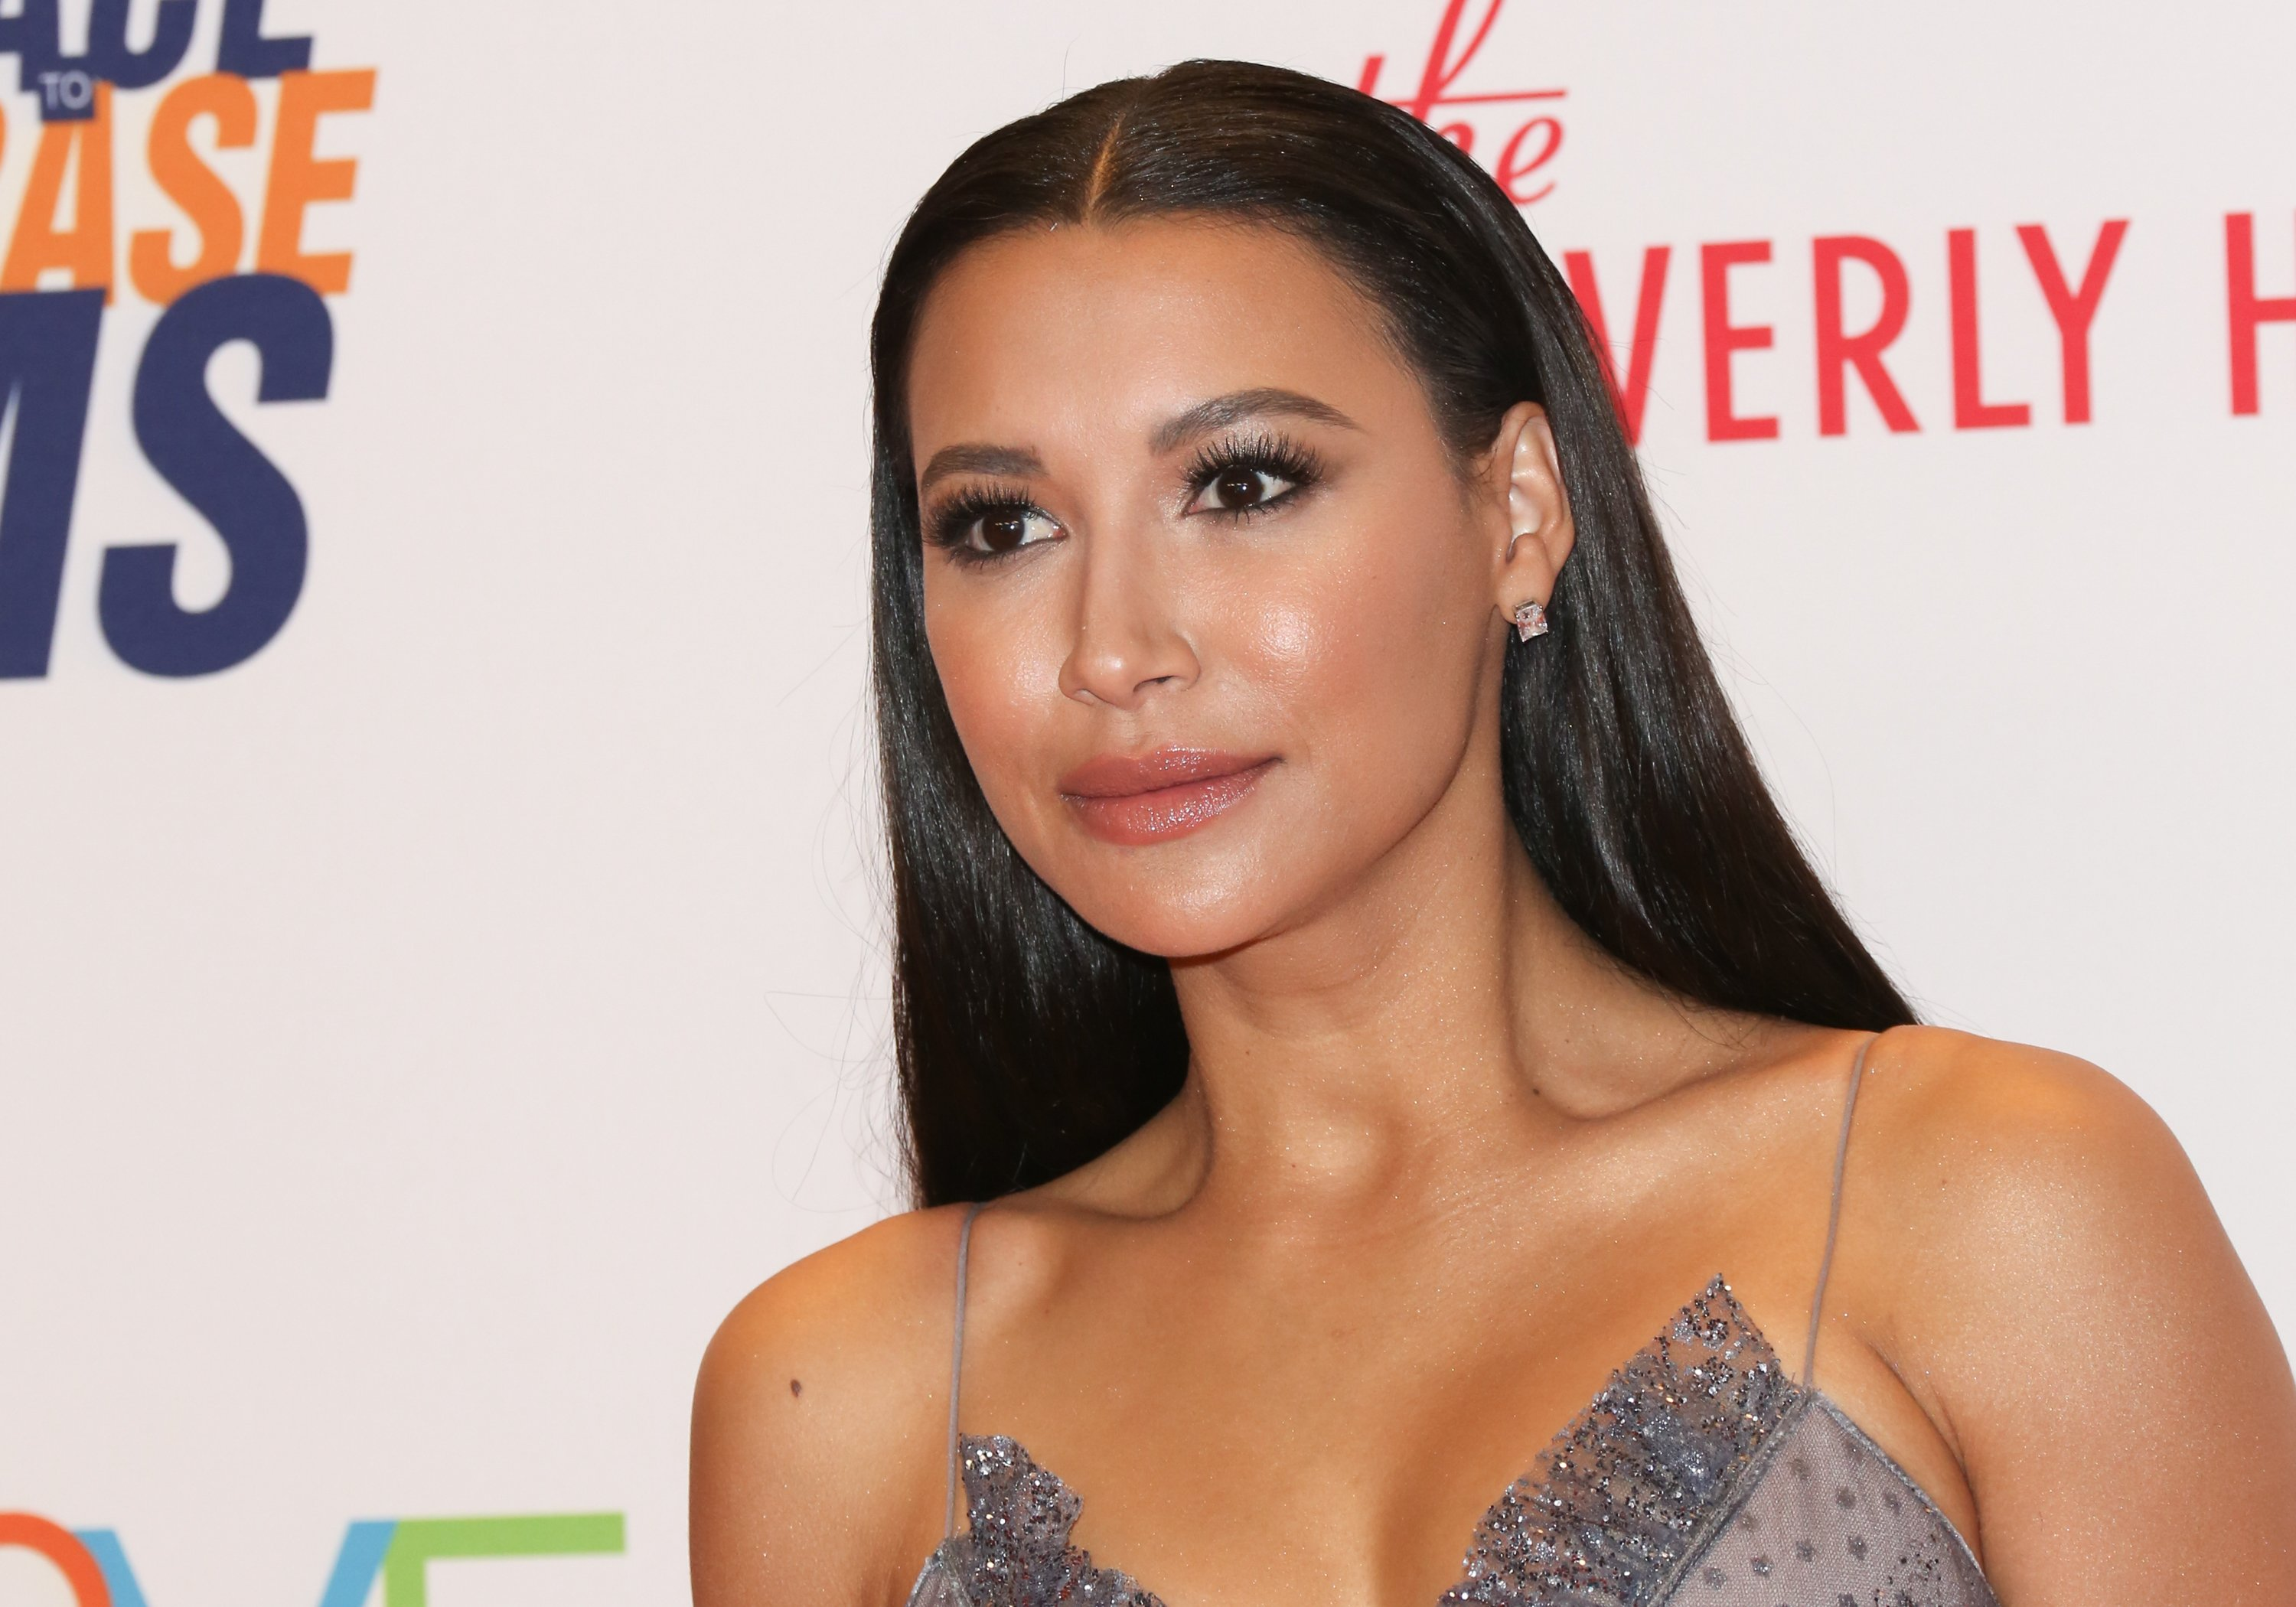 Naya Rivera at the 24th annual Race to Erase MS gala on May 5, 2017 in Beverly Hills, California.   Photo: Getty Images